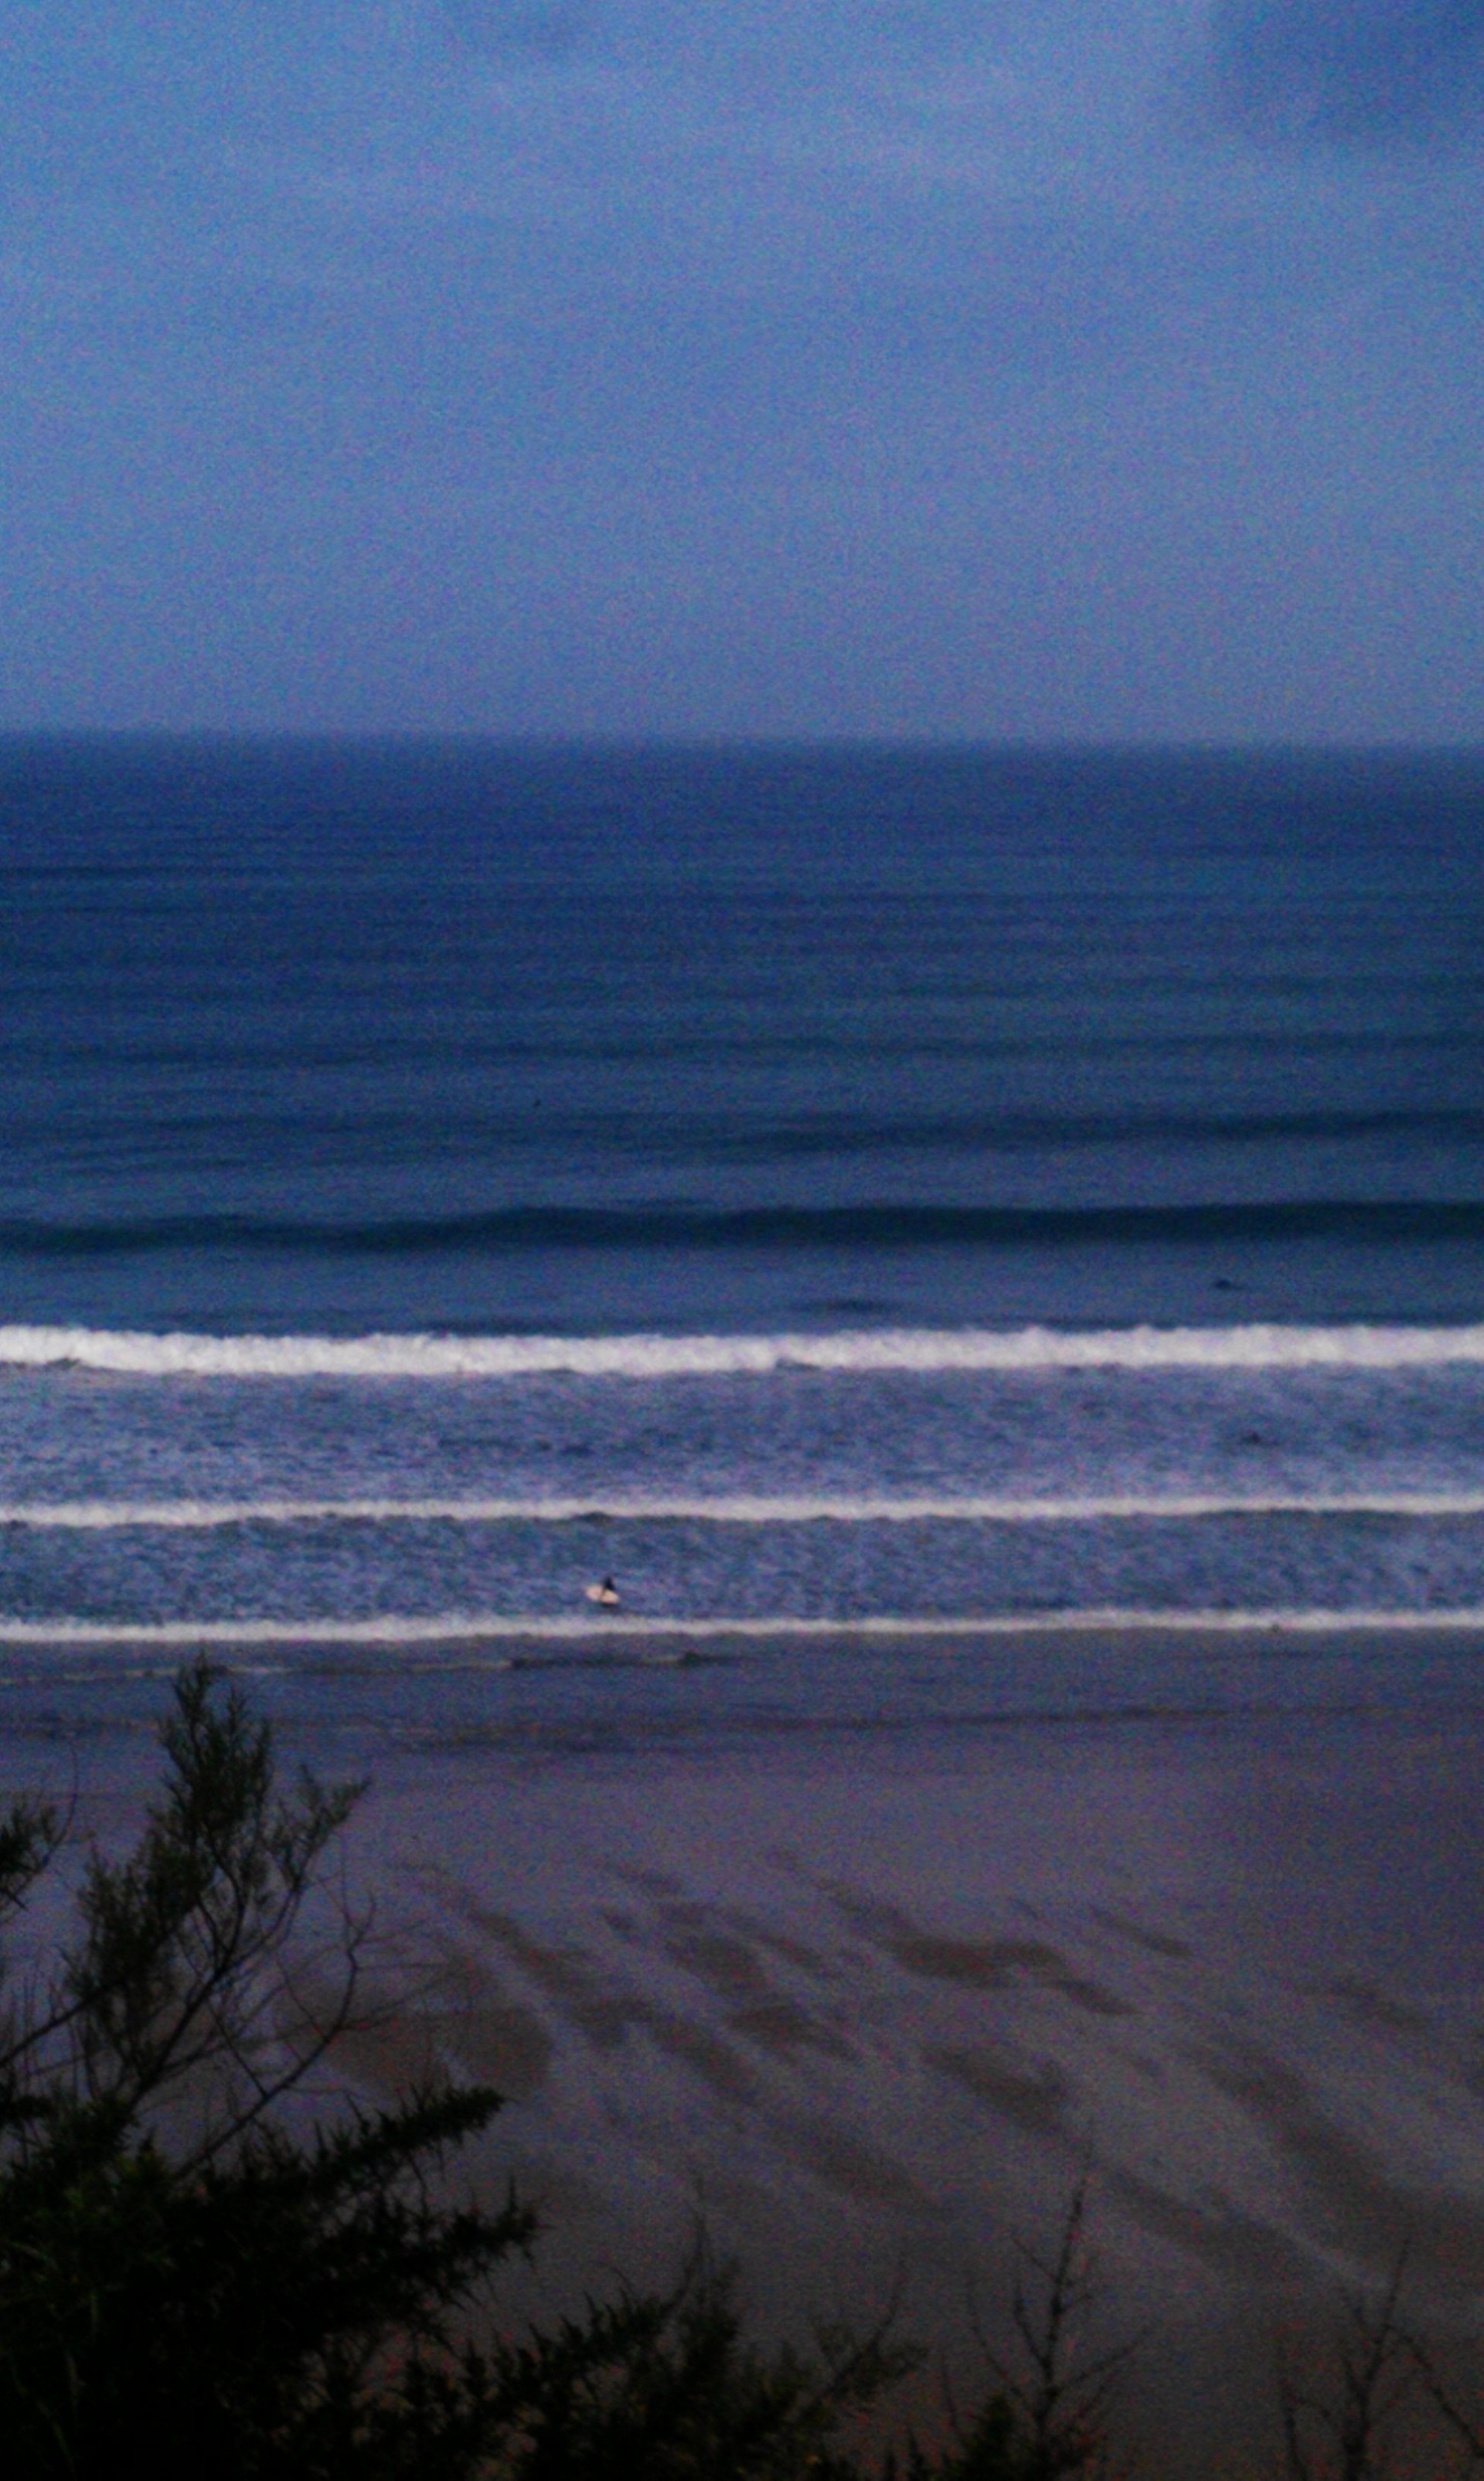 rory foster's photo of Newquay - Tolcarne Wedge